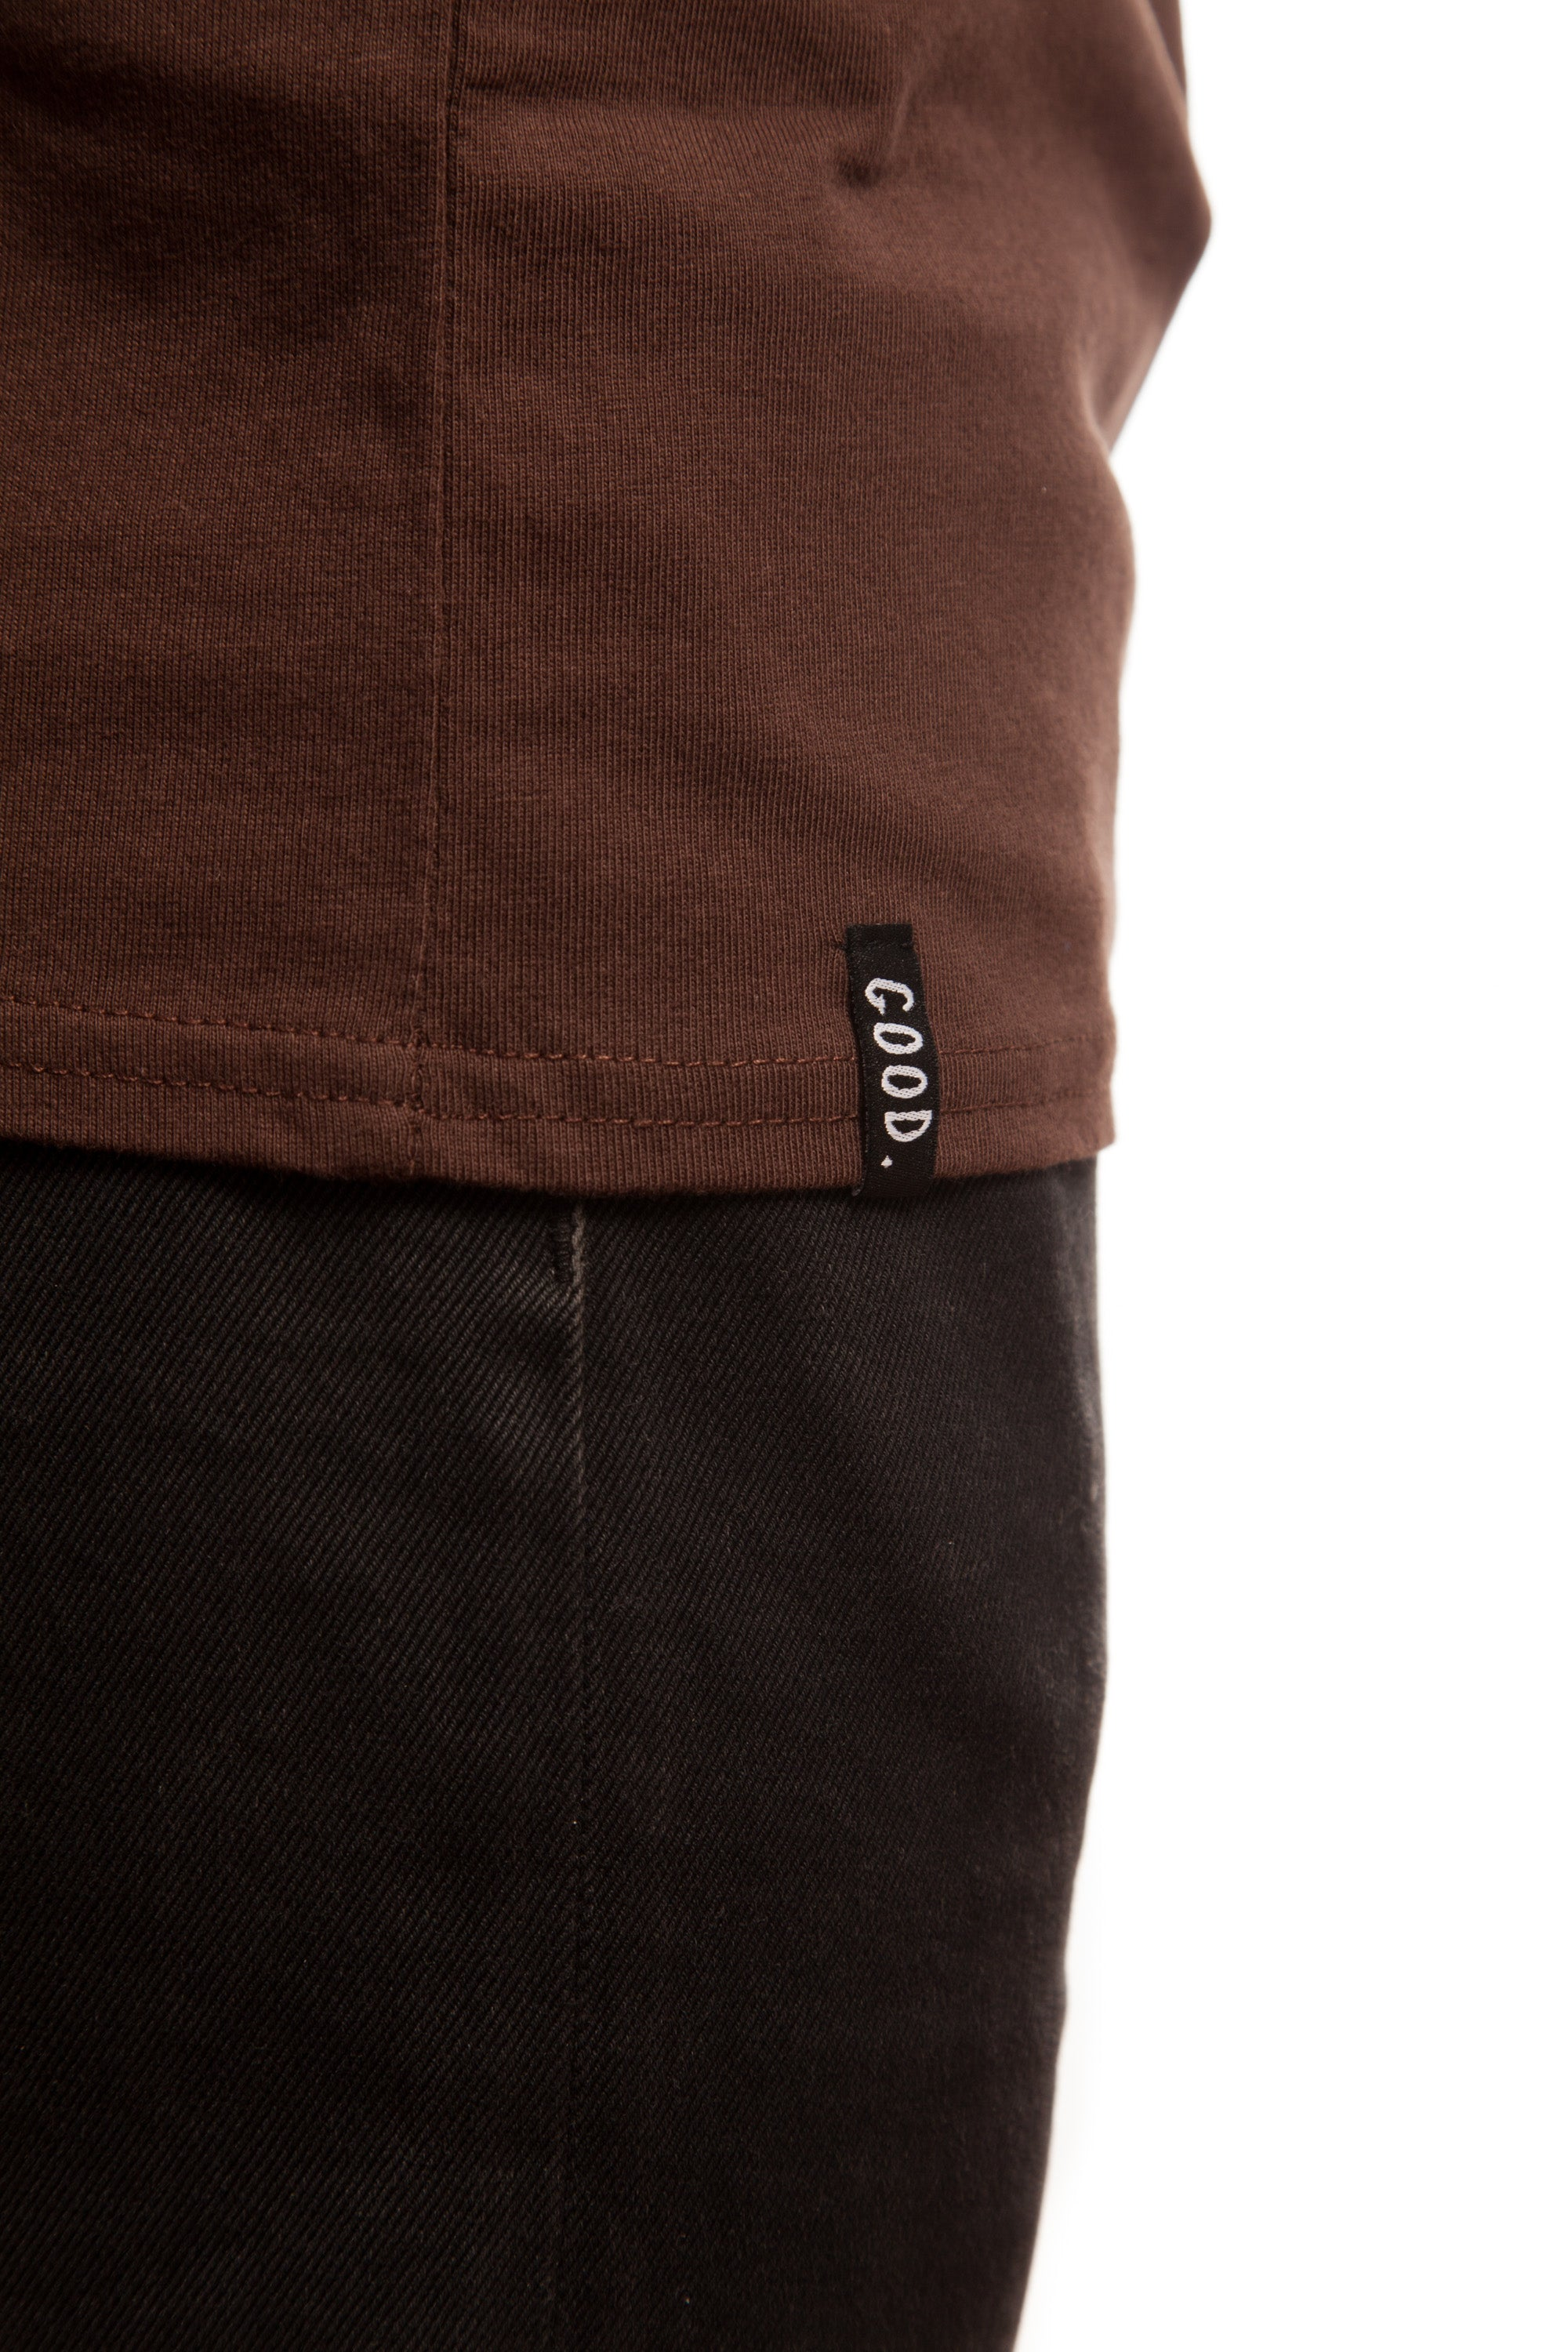 everythings good clothing co chocolate embroidered basic everythings good